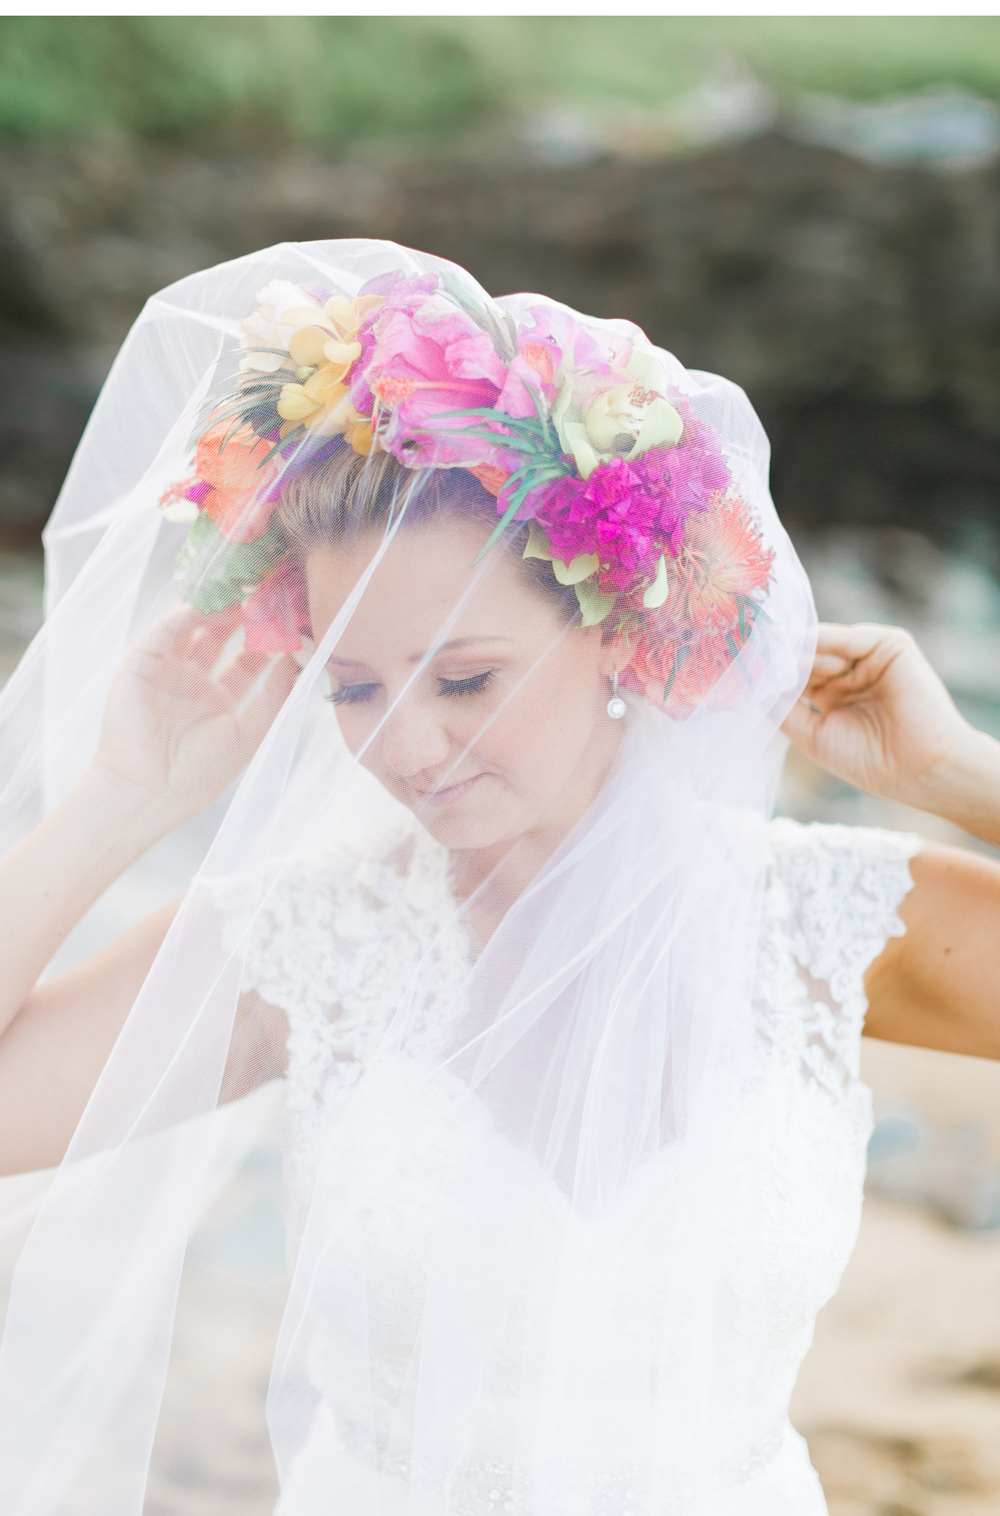 Natalie-Schutt-Photography-Maui-Wedding_04.jpg